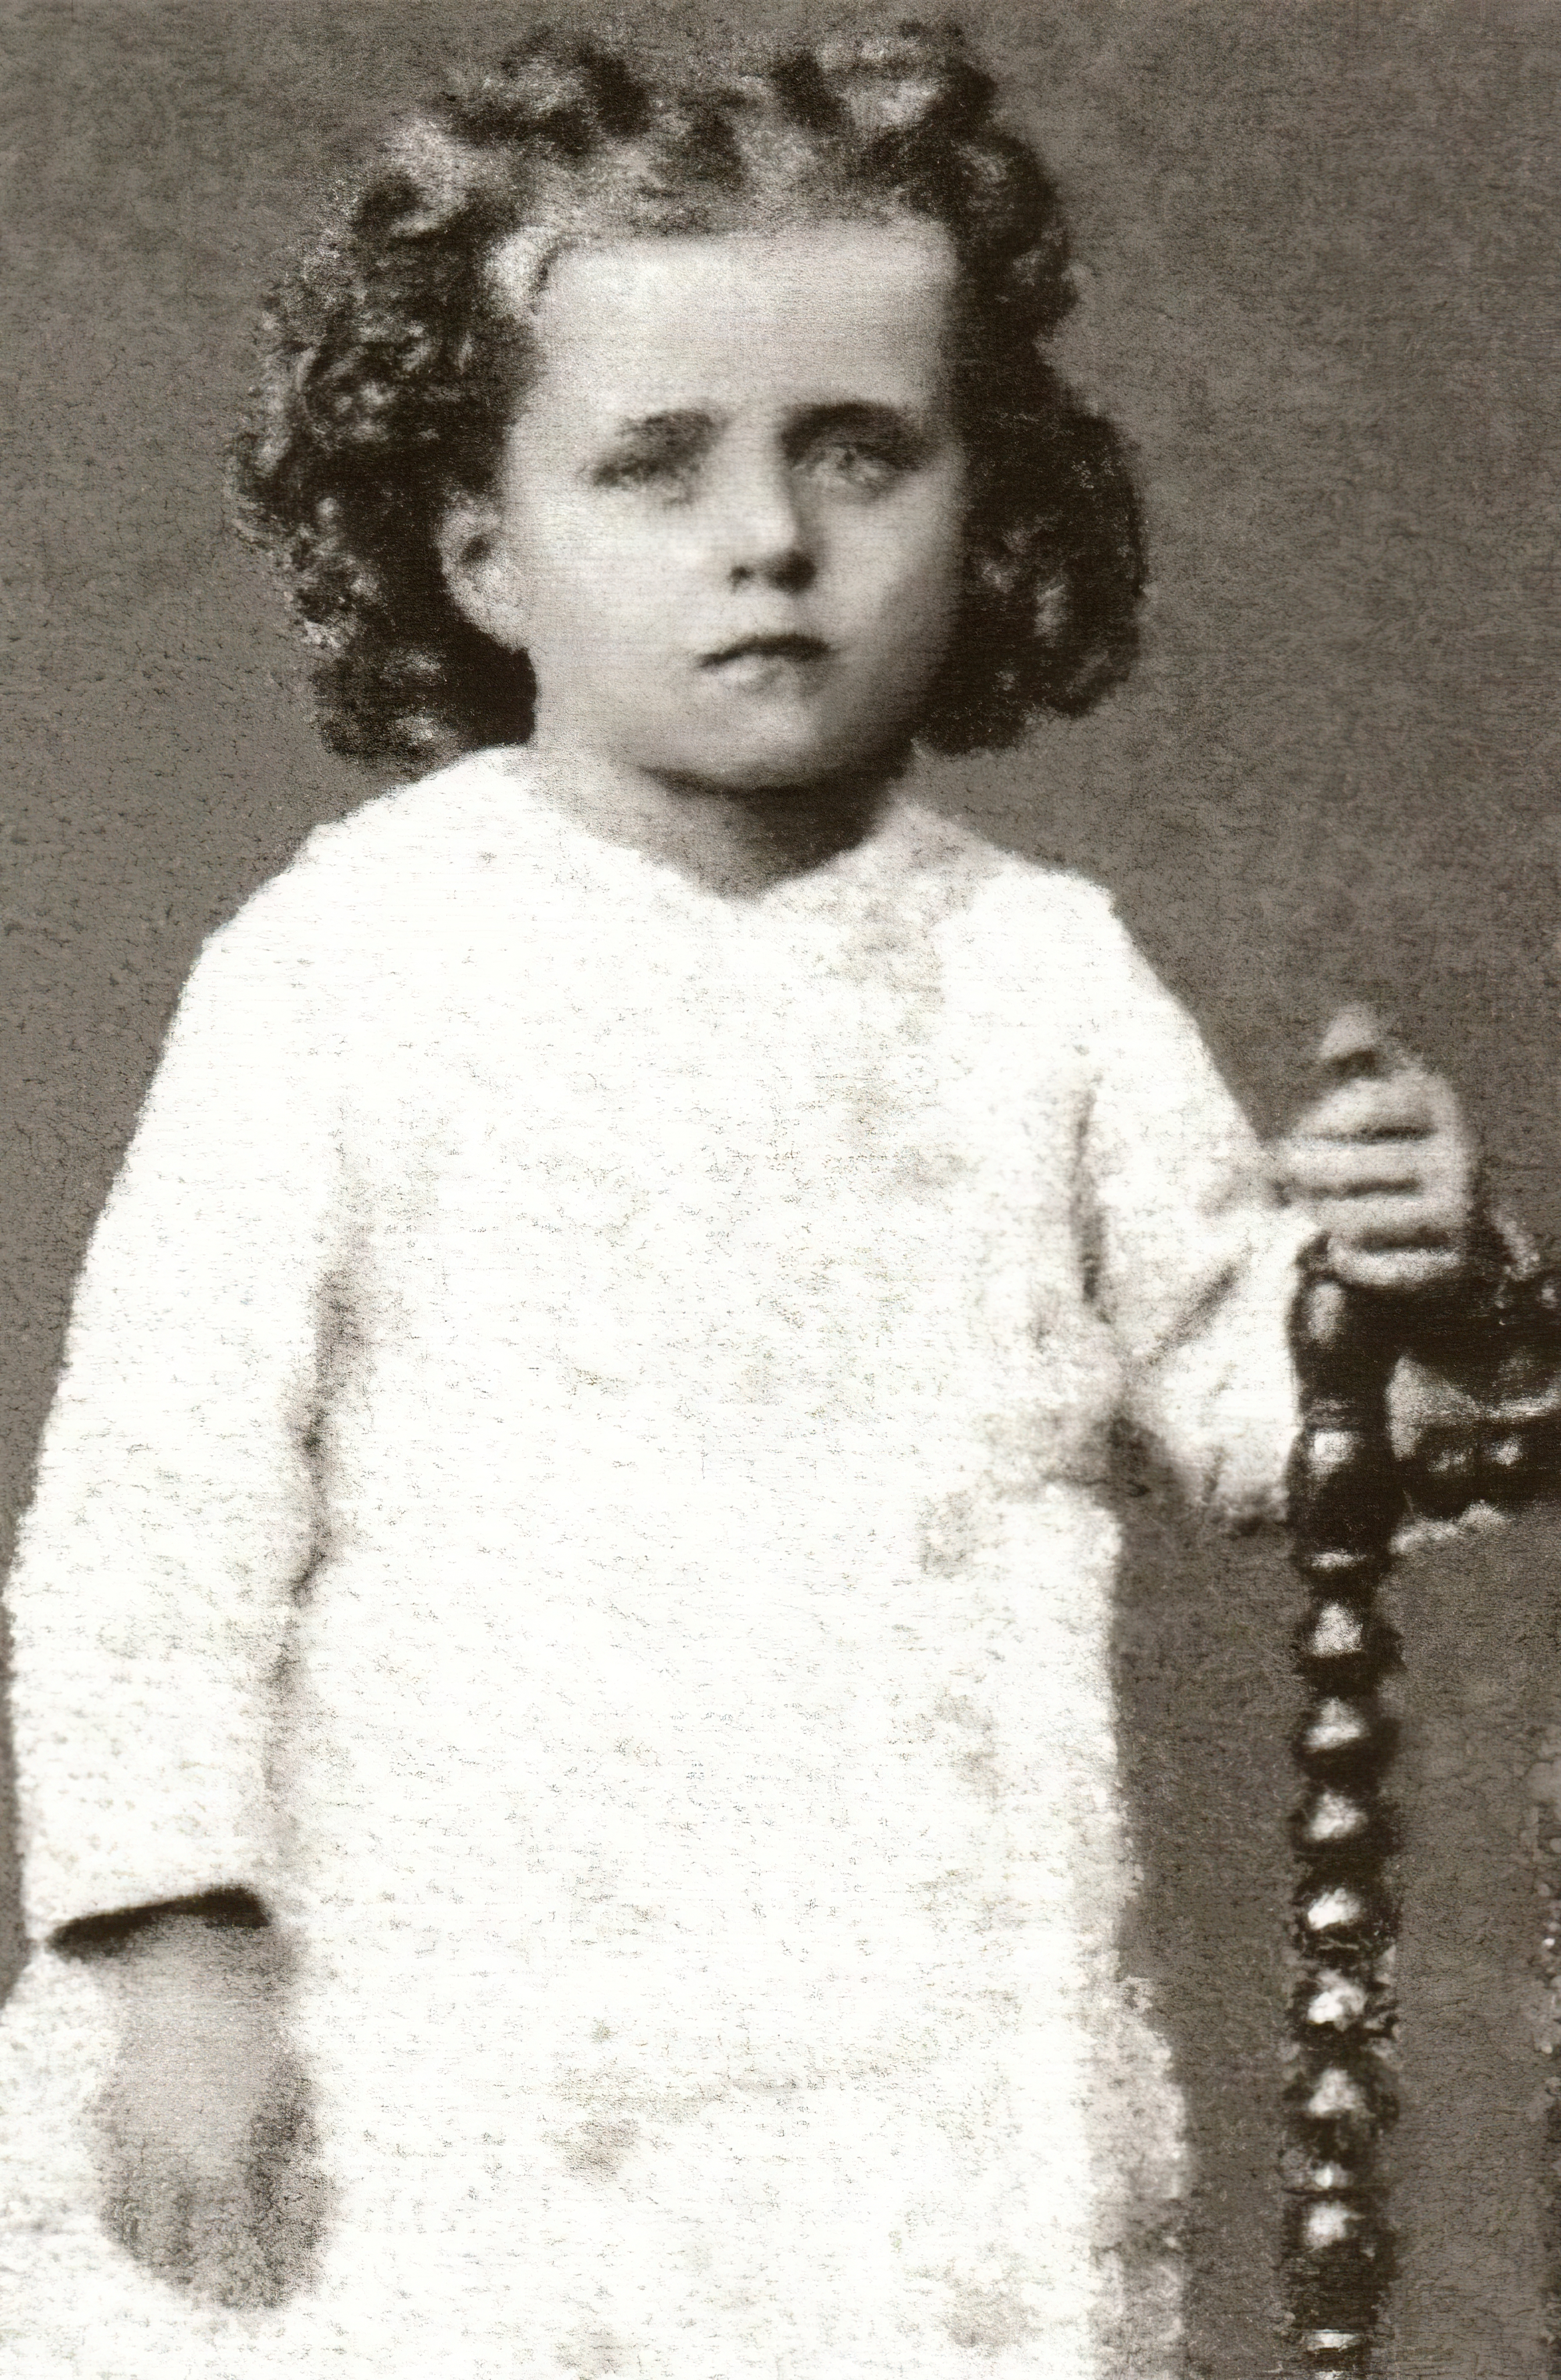 St. Thérèse as a 3 years old